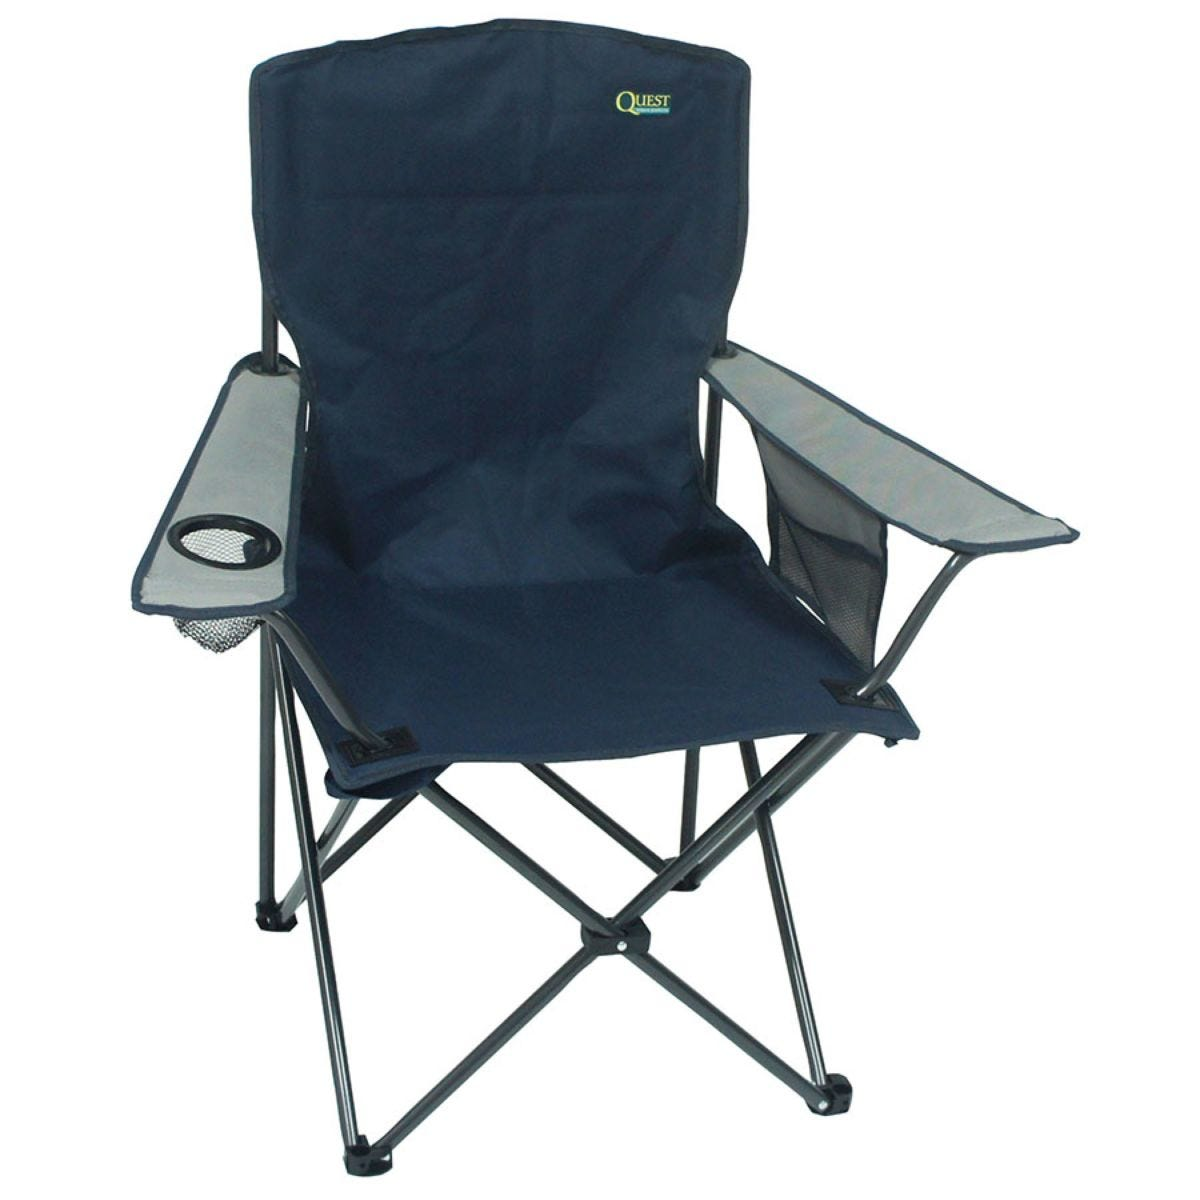 Quest Traveller Morecambe Compact Chair - Blue